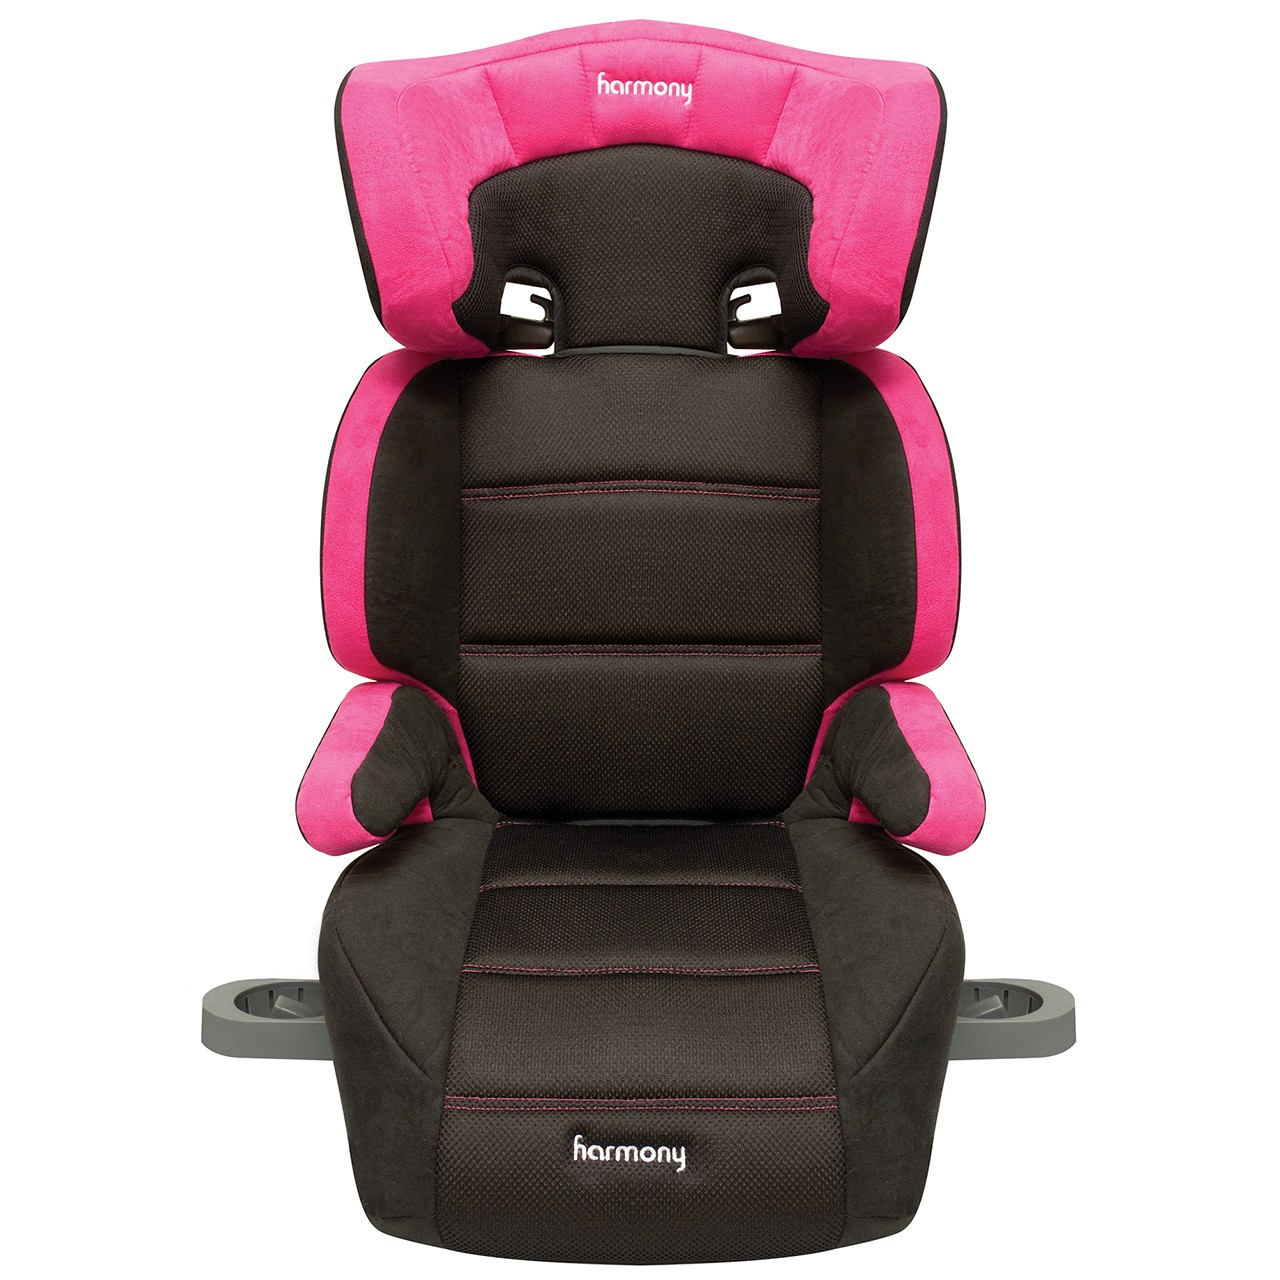 harmony high chair recall wooden kitchen chairs dreamtime deluxe comfort booster car seat rich raspberry